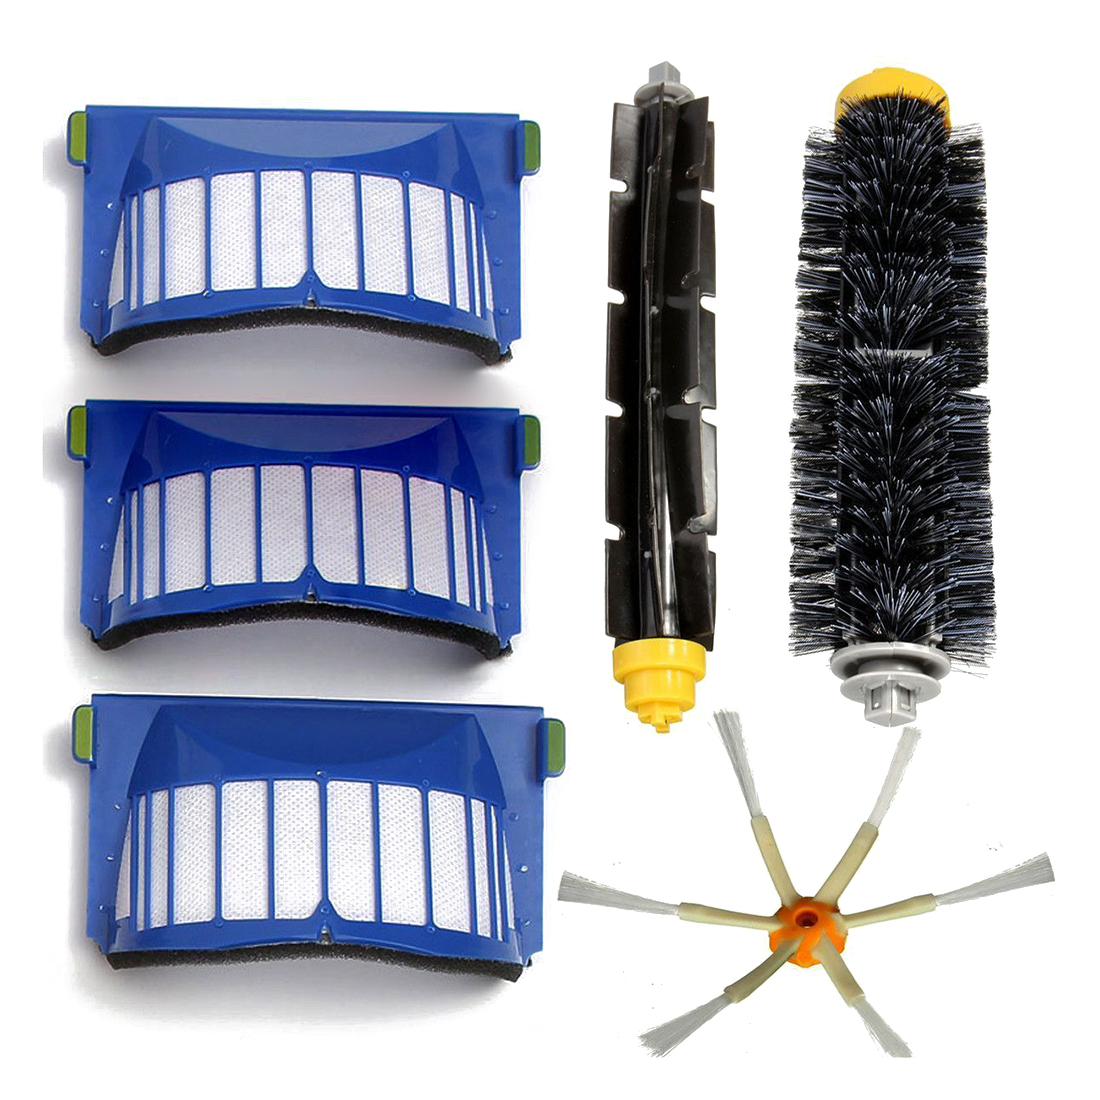 4 in 1 fitting 6 pcs Vacuum cleaner parts 3 pcs Filter+Brush 6 armed Side for iRobot Roomba 600 Series 620 630 650 6660 bristle brush flexible beater brush fit for irobot roomba 500 600 700 series 550 650 660 760 770 780 790 vacuum cleaner parts